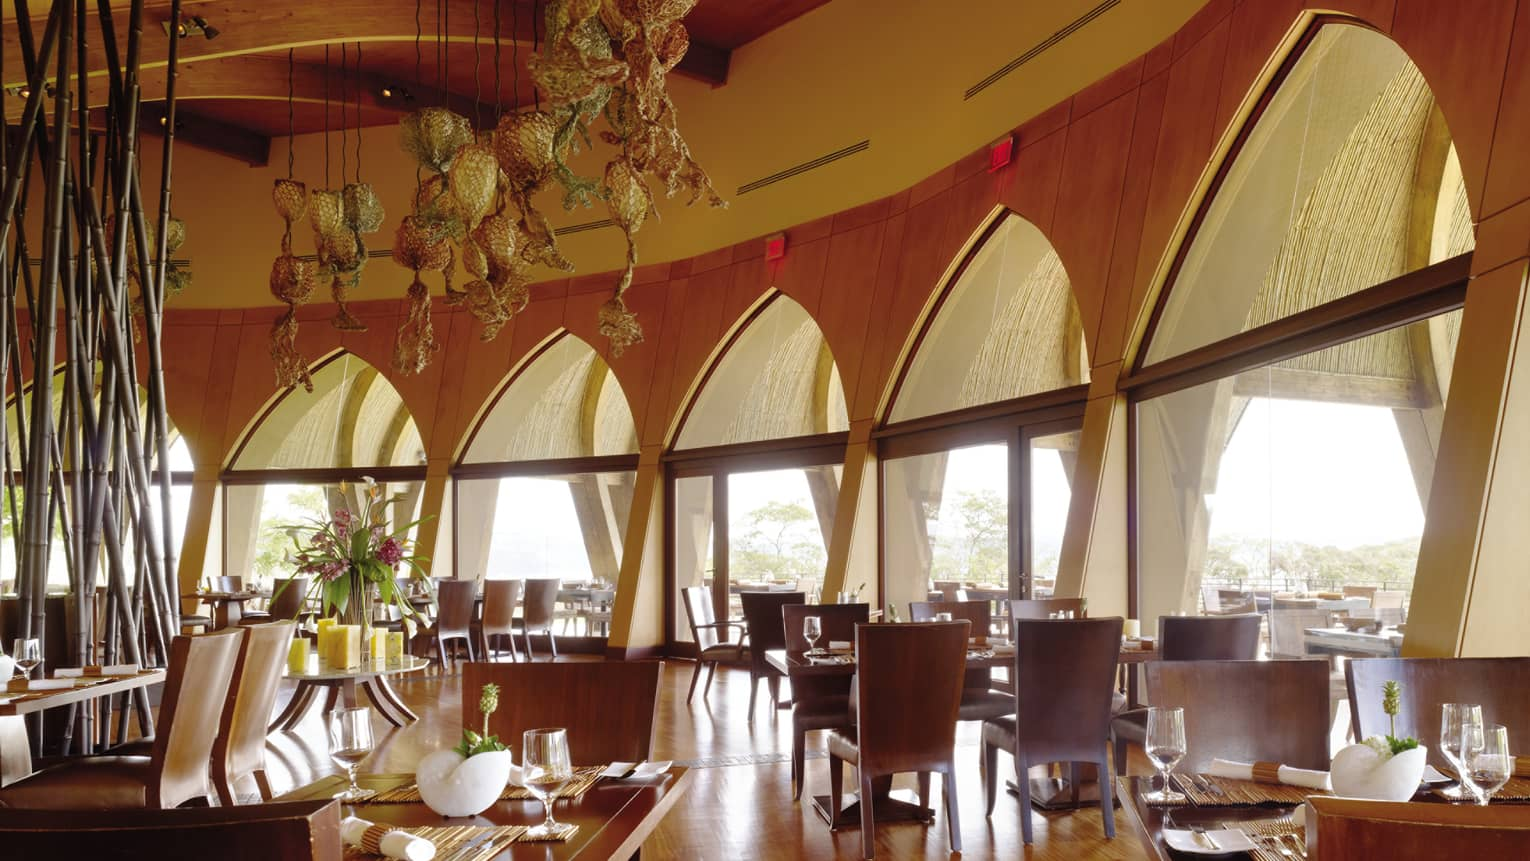 Caracol restaurant dining room with wood floors, curved wood walls lined with peak windows